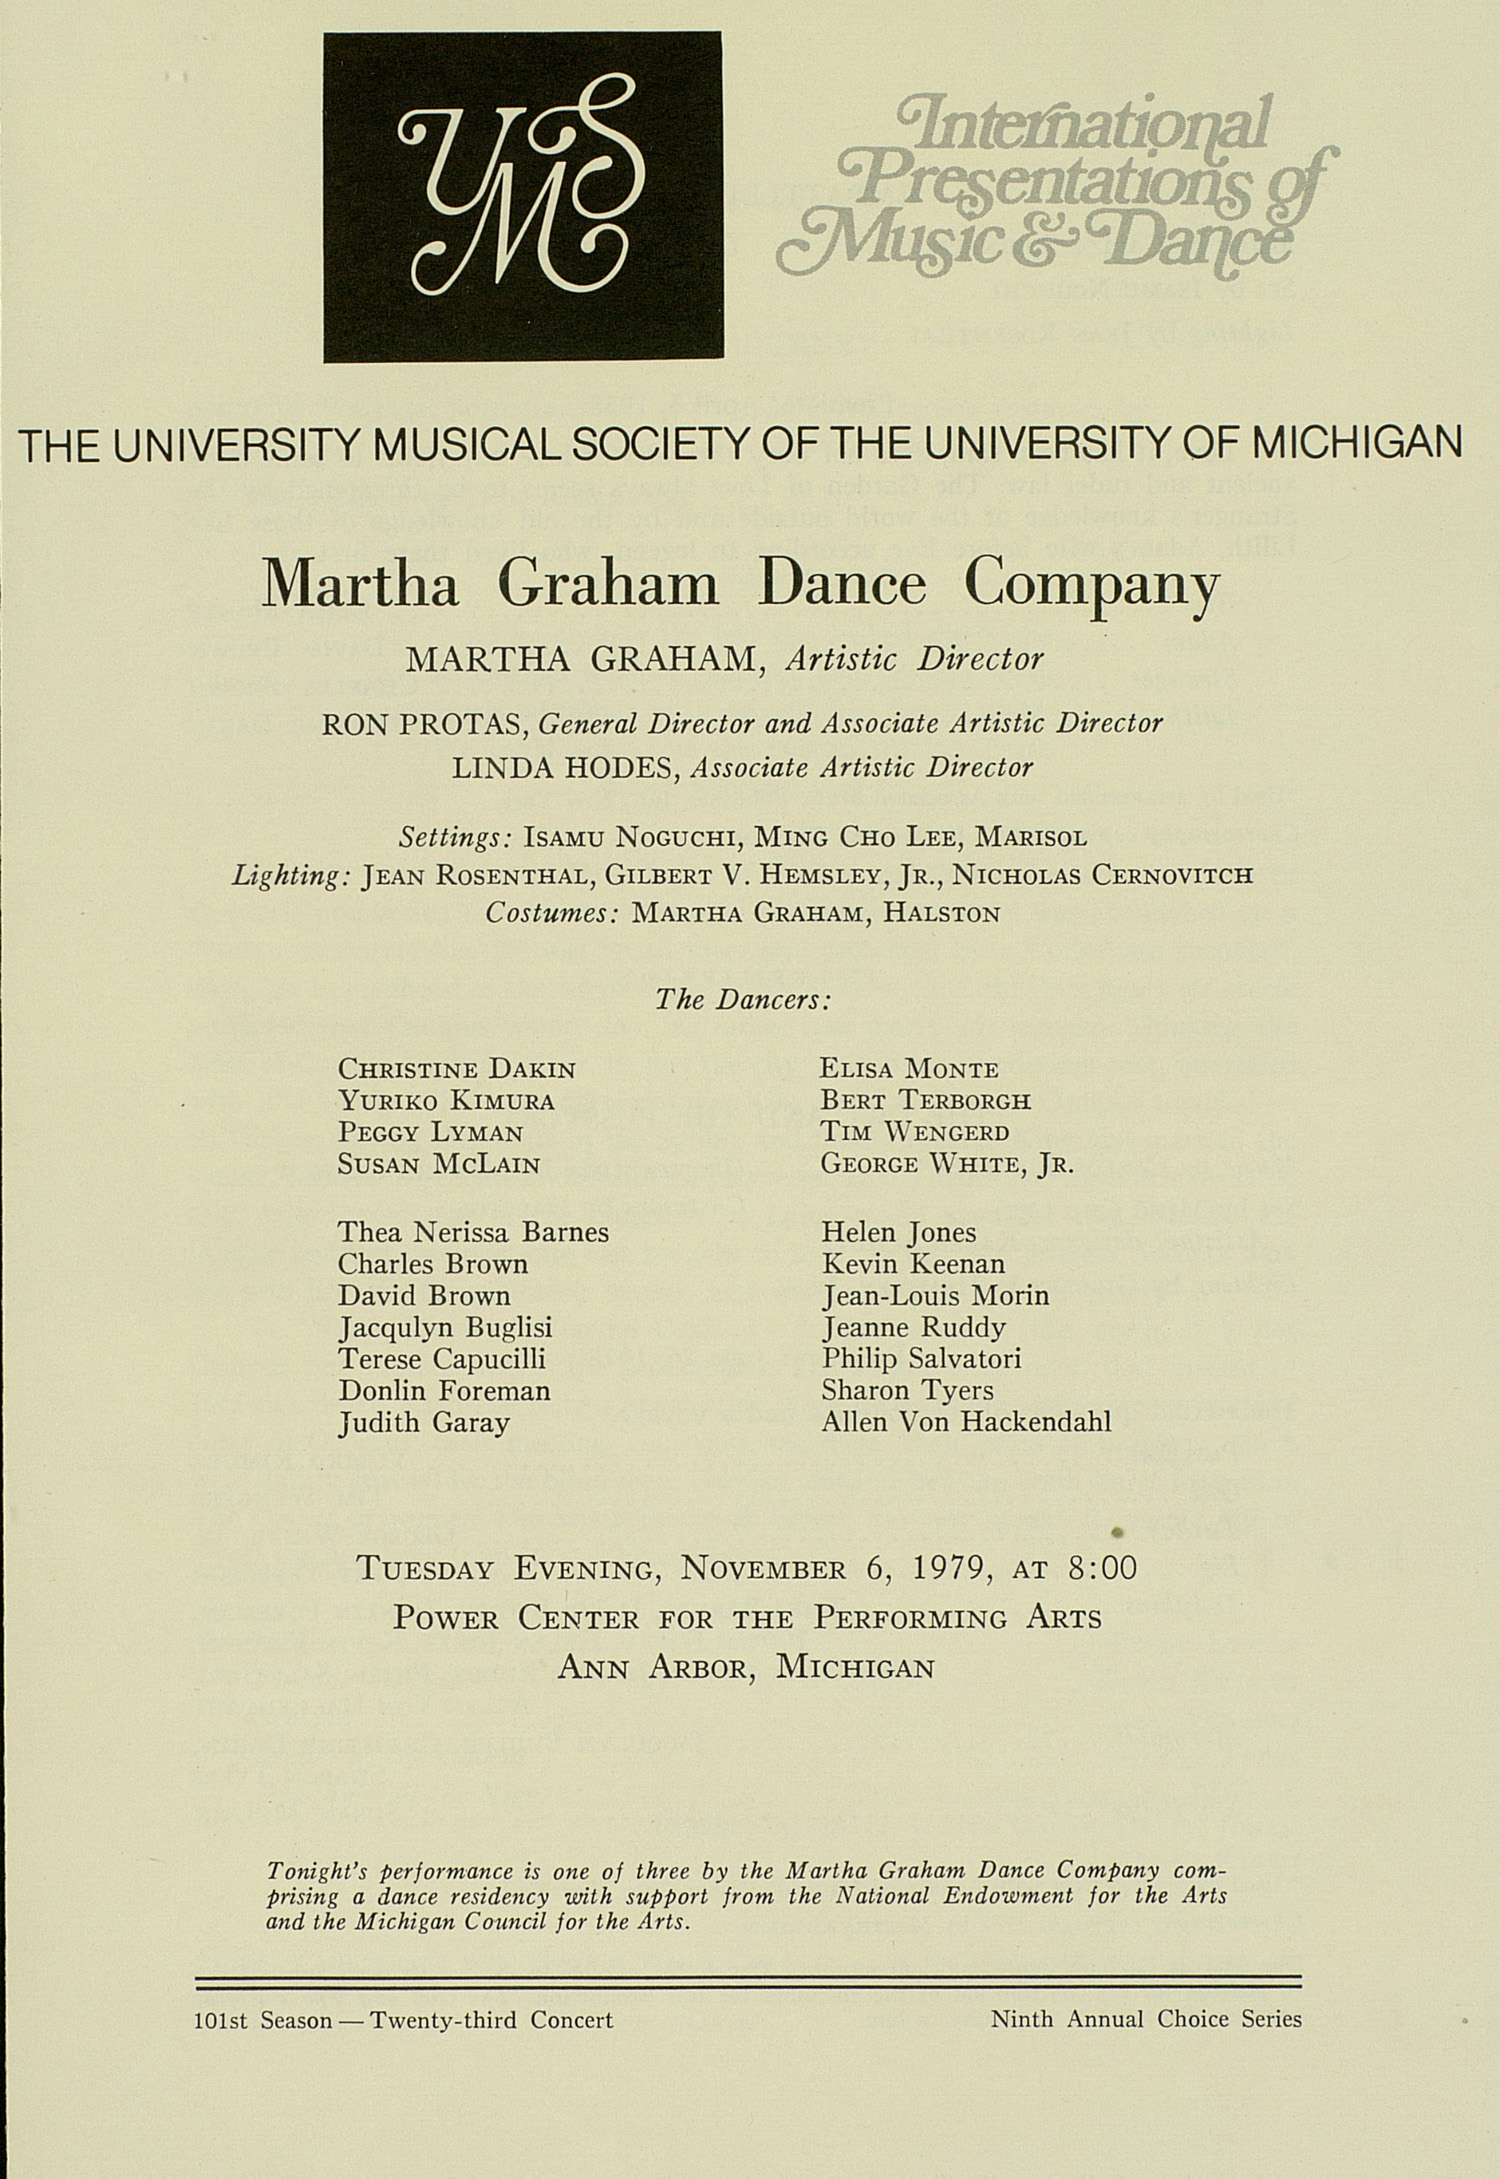 UMS Concert Program, November 6, 1979: International Presentations Of Music & Dance -- Martha Graham Dance Company image